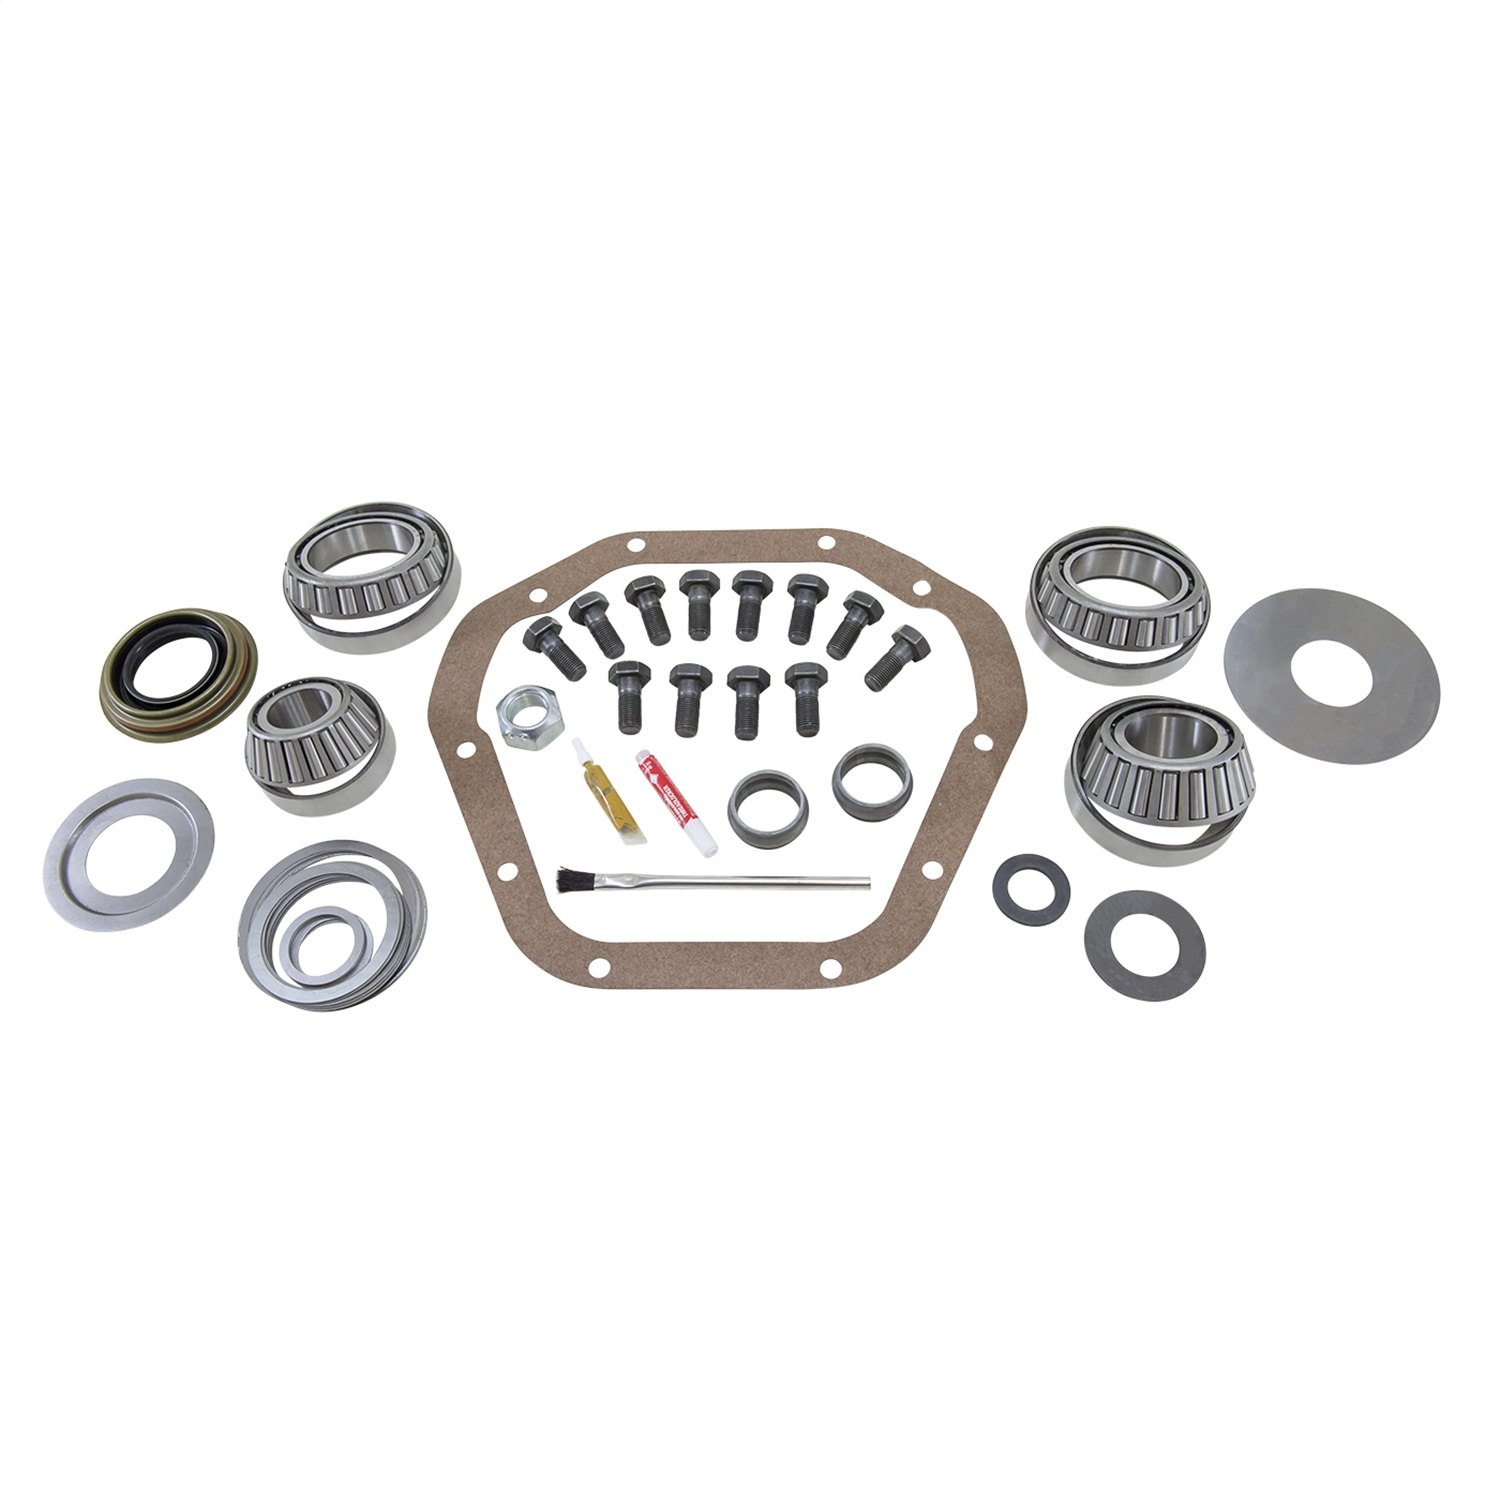 Yukon Gear YK D60-F Master Kit Differential Ring and Pinion Installation Kit - image 1 of 1